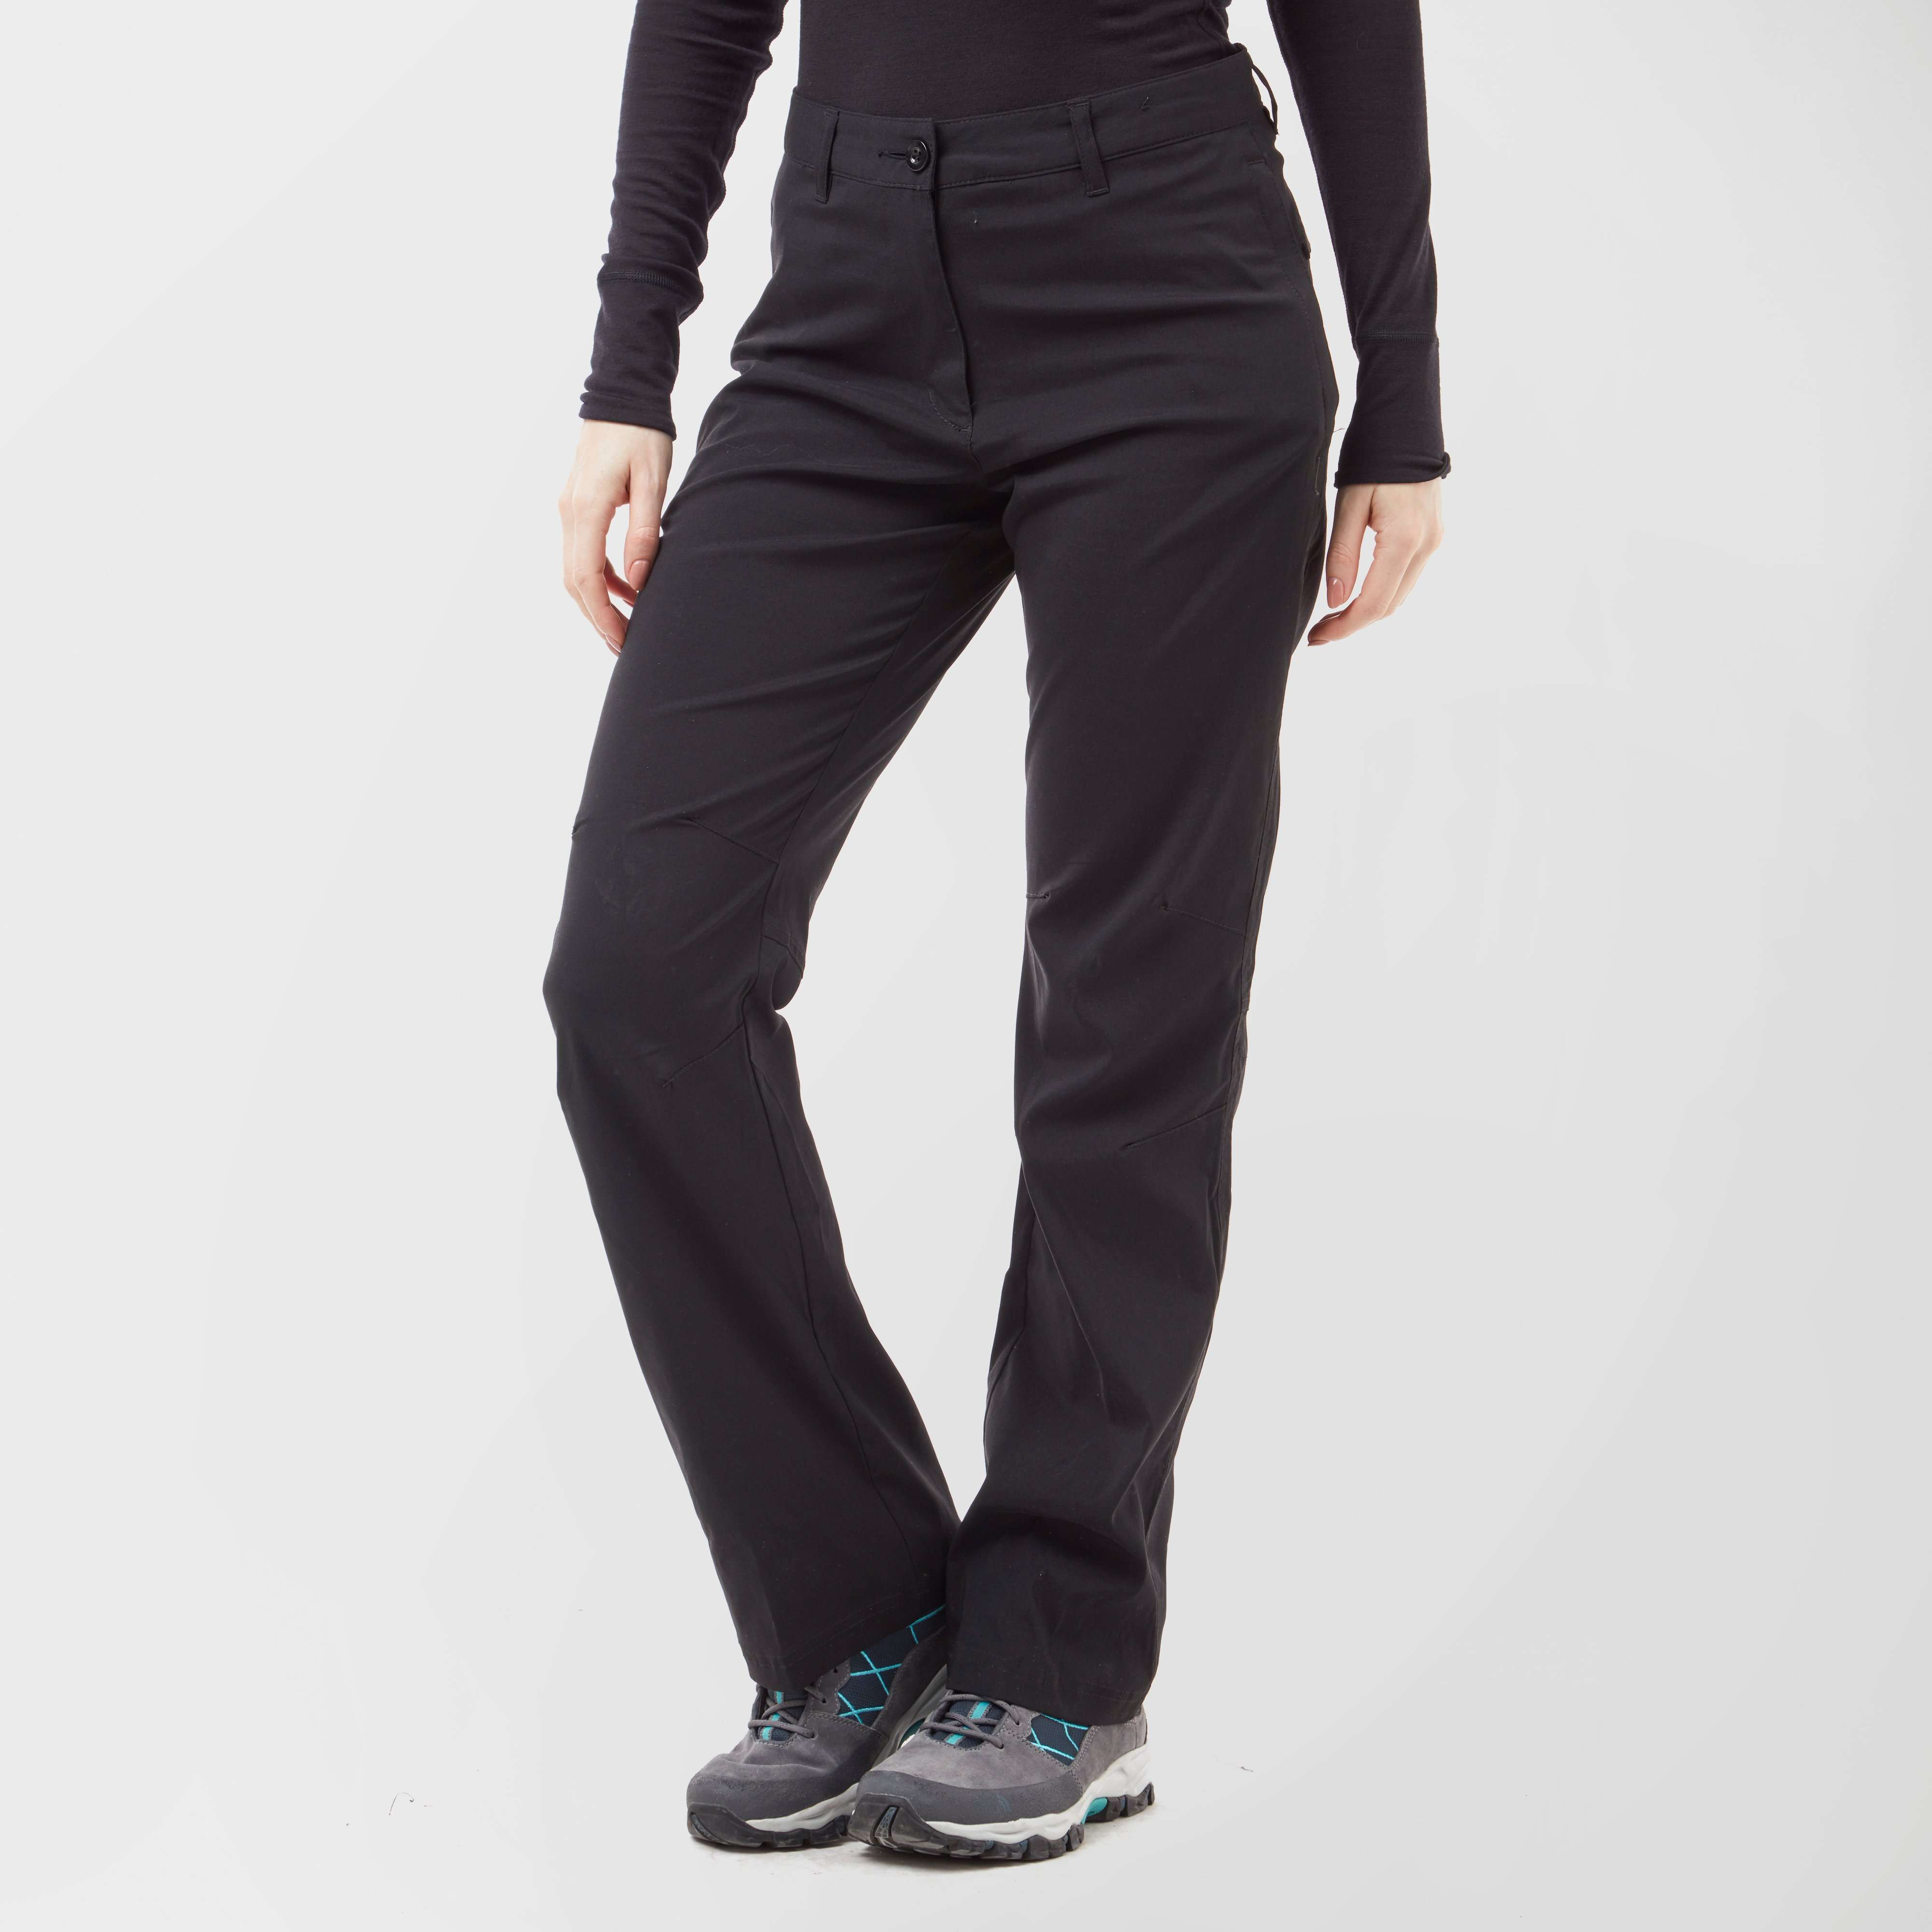 PETER STORM Women's Stretch Trousers (Long)